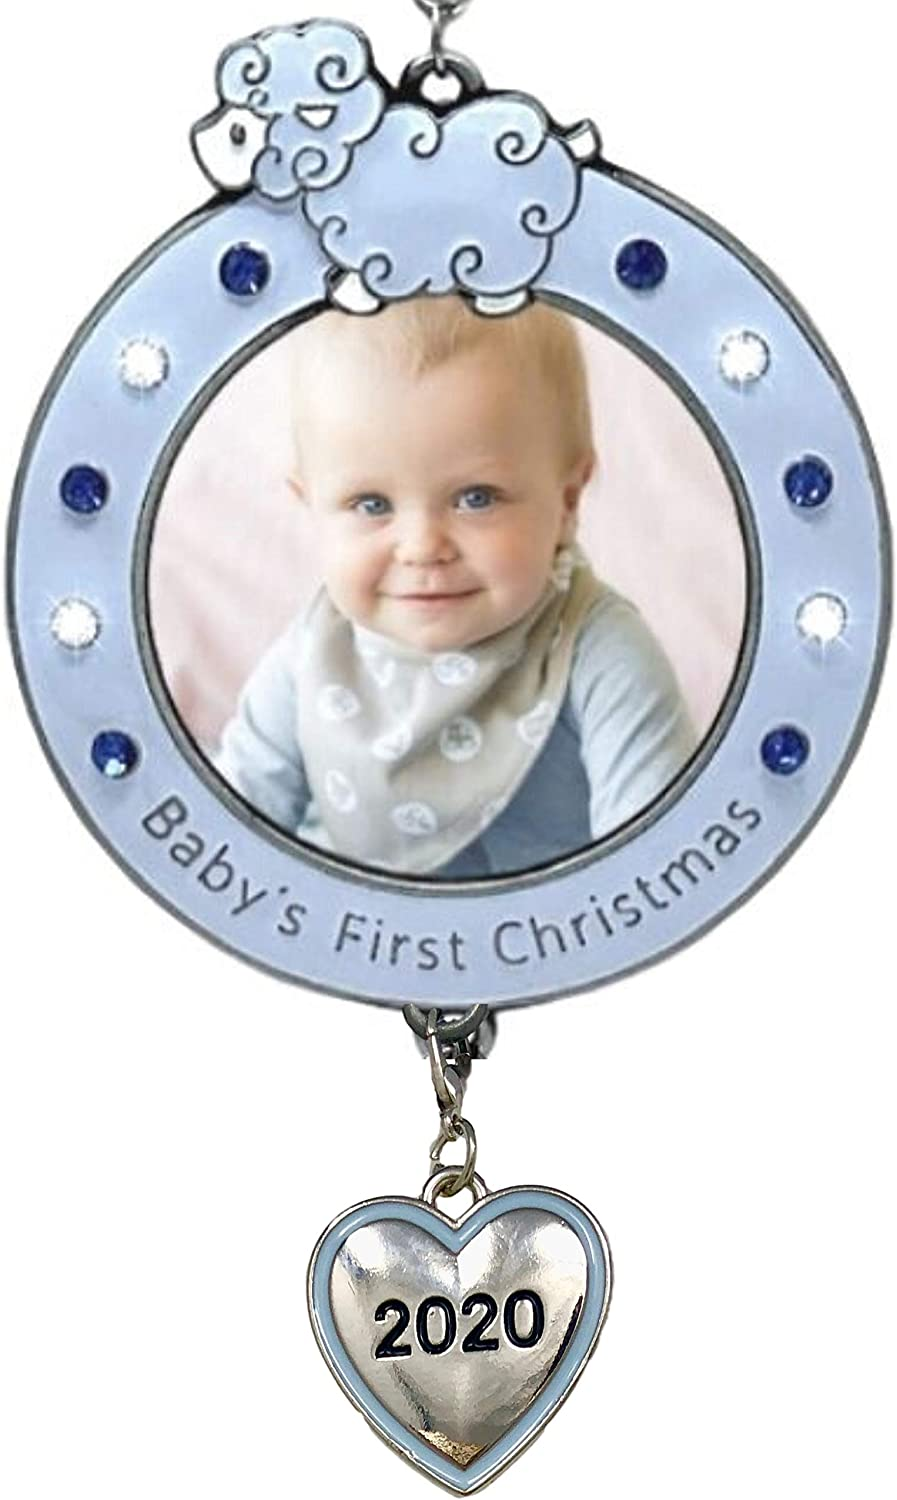 Baby Boy's First Christmas 2020 Dated Frame - Picture Ornament